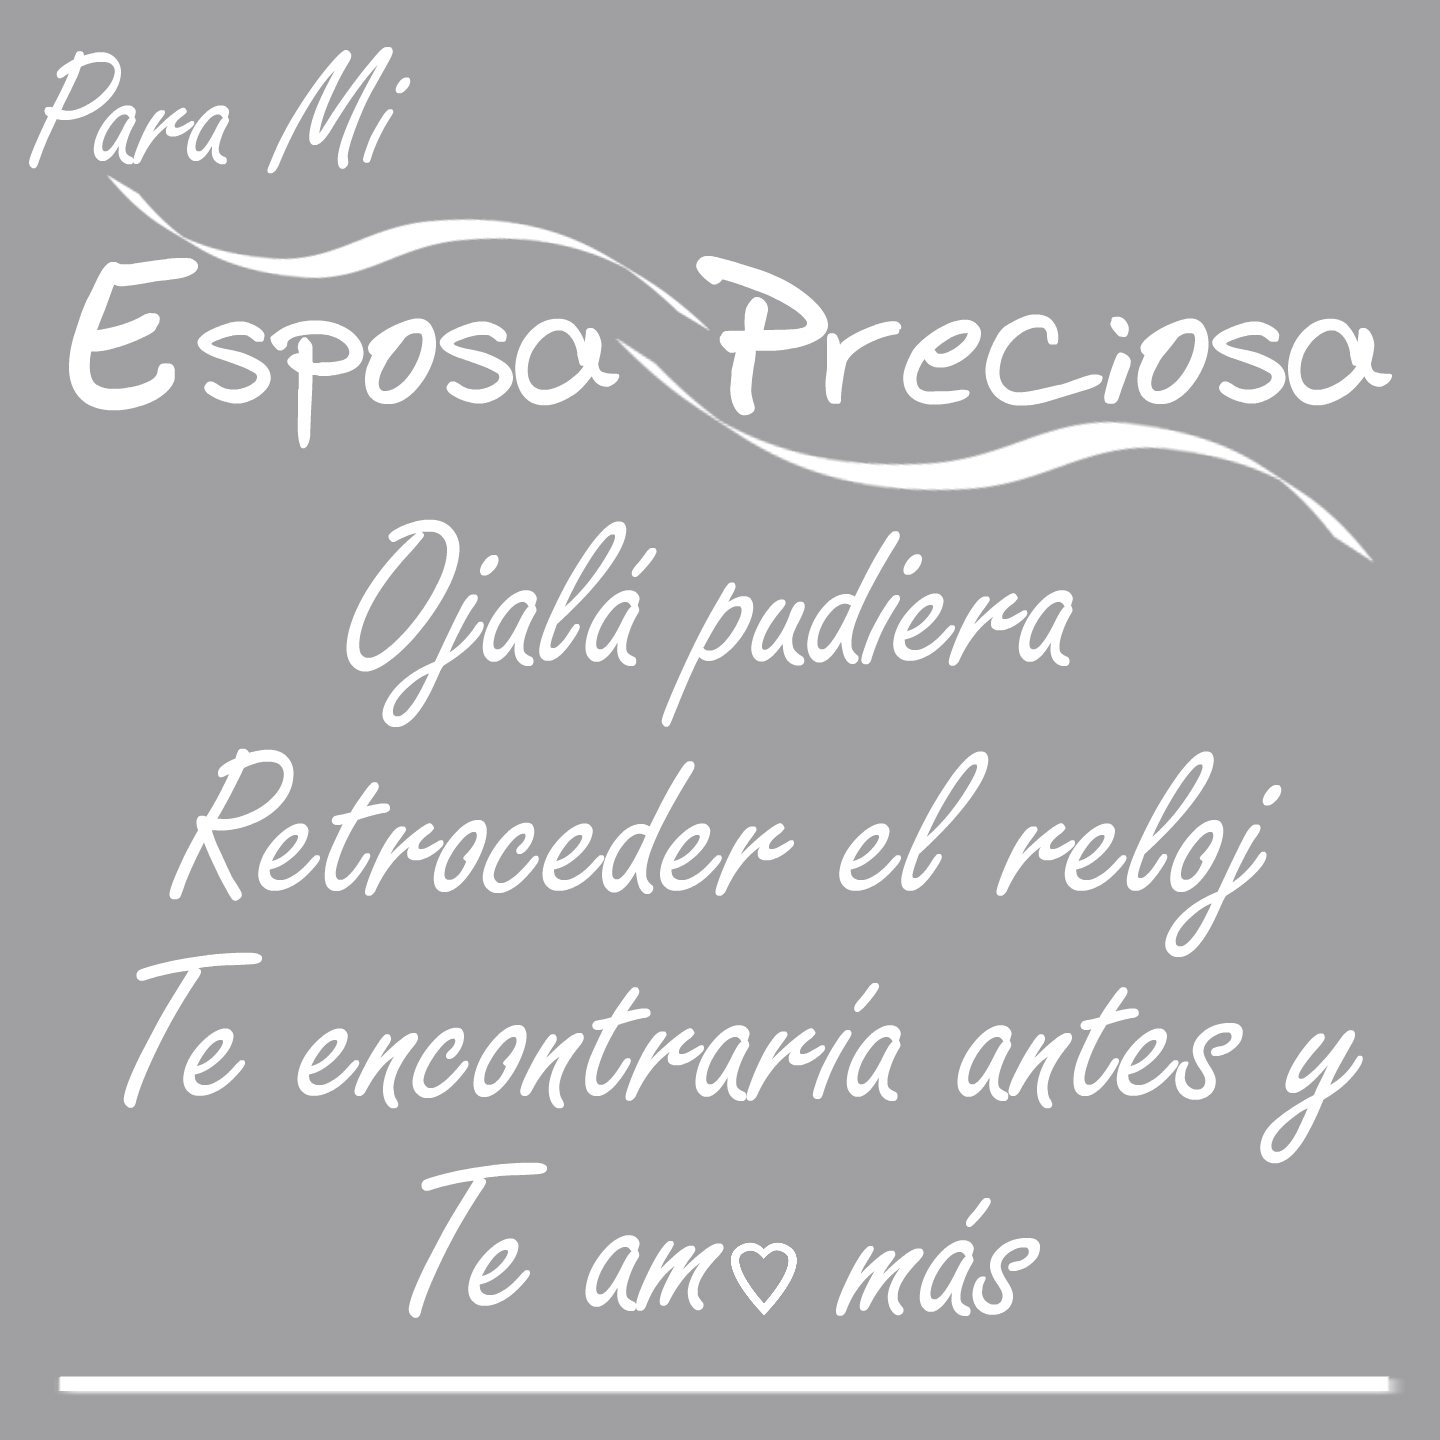 I Love My Wife Wall Decal Pledge-Espanol Para Mi Esposa Preciosa-a WHITE Vinyl Wall Decal-I Love You More in Spanish-A Happy Marriage-Shes the Best Freakin ...